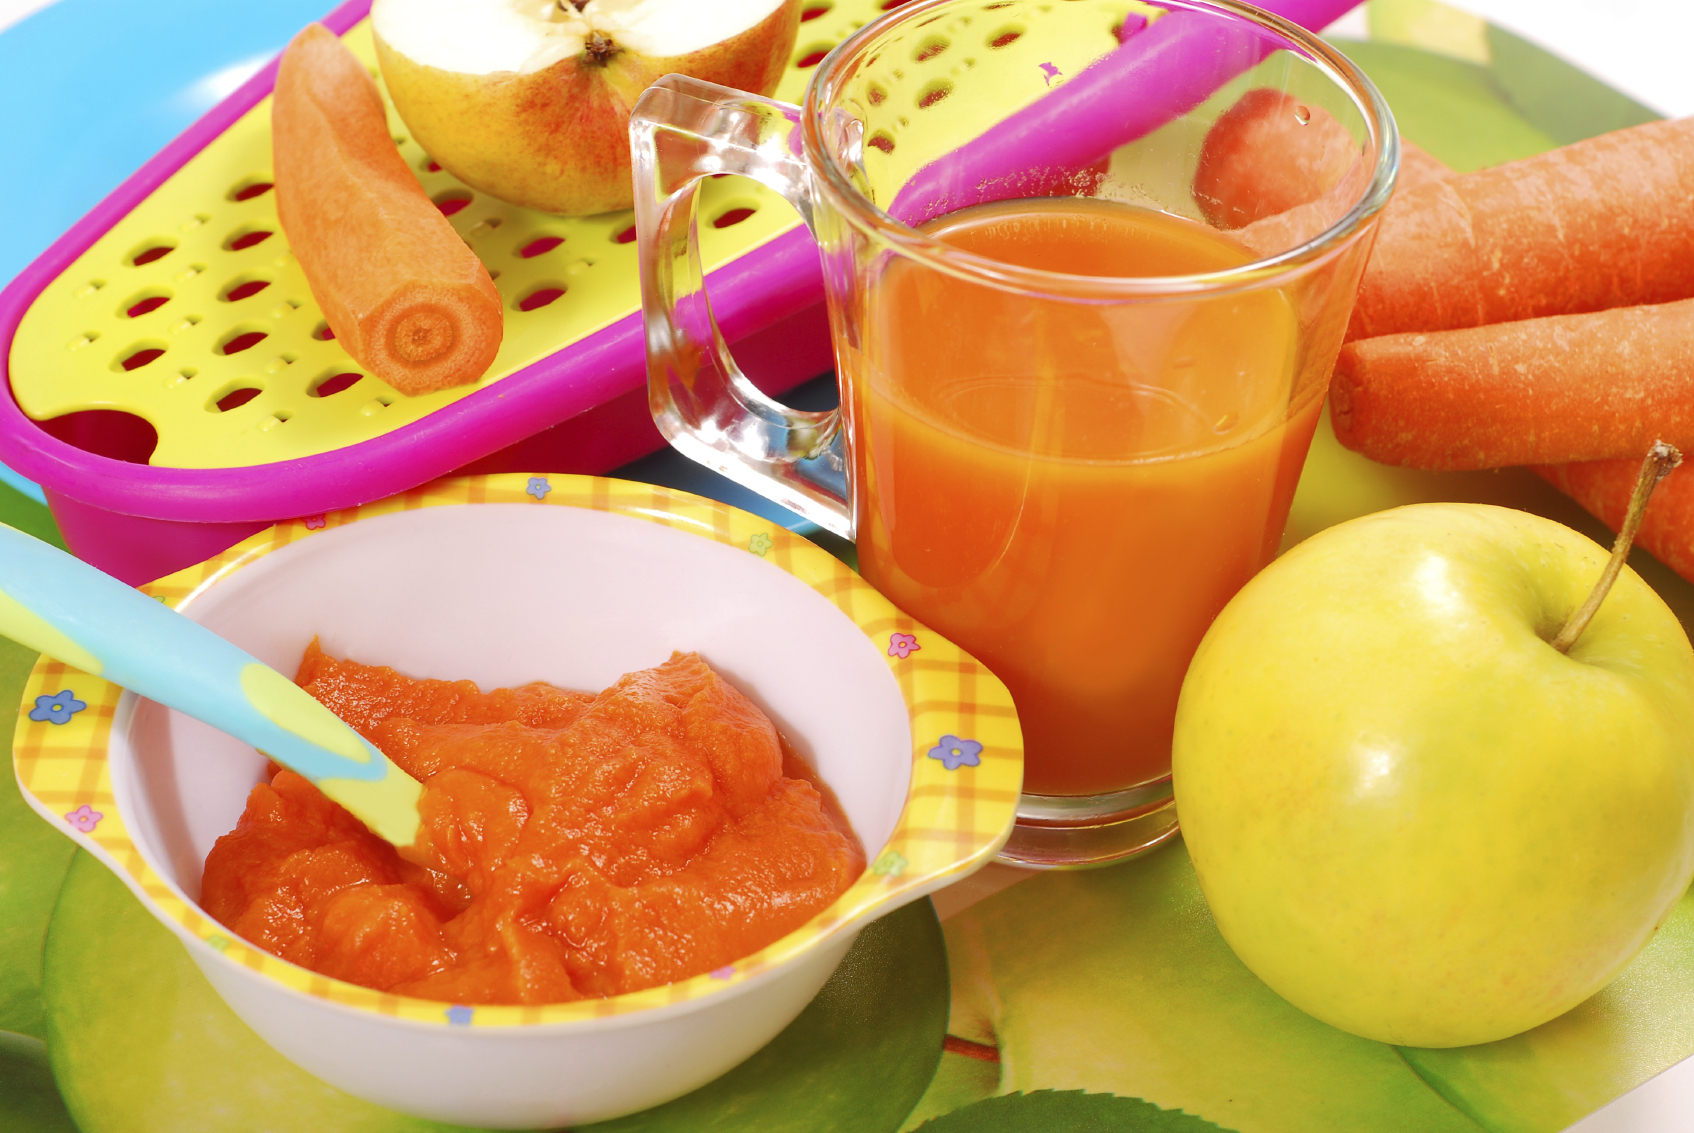 11 simple steps to fresh and nutritious homemade baby food - LITTLEROCK